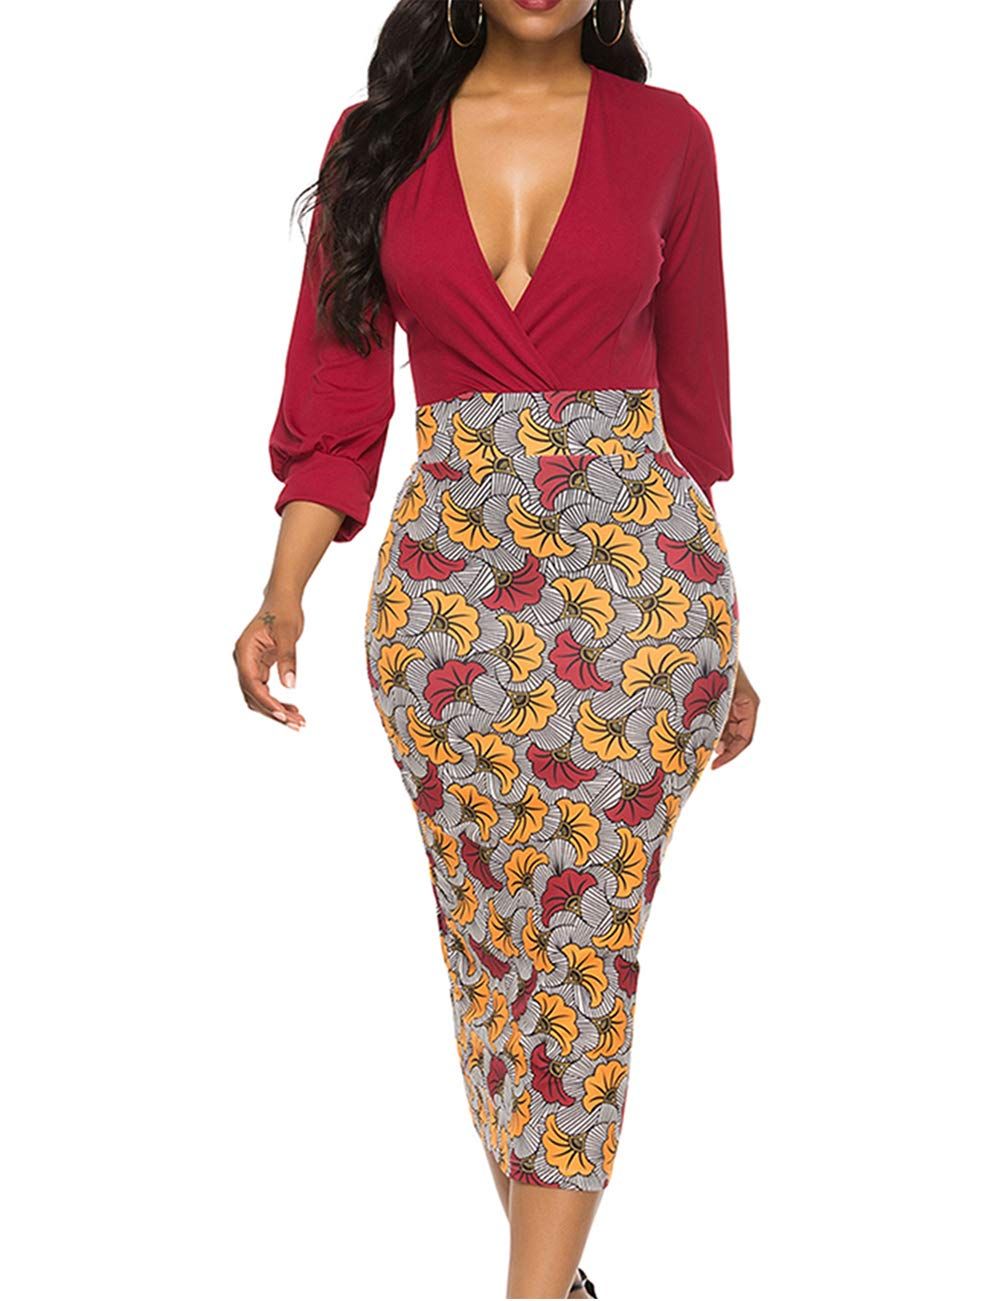 YCOOCE Women African Dress Casual V Neck Ruched Party Pencil Dress Cocktail Bodycon Dresses